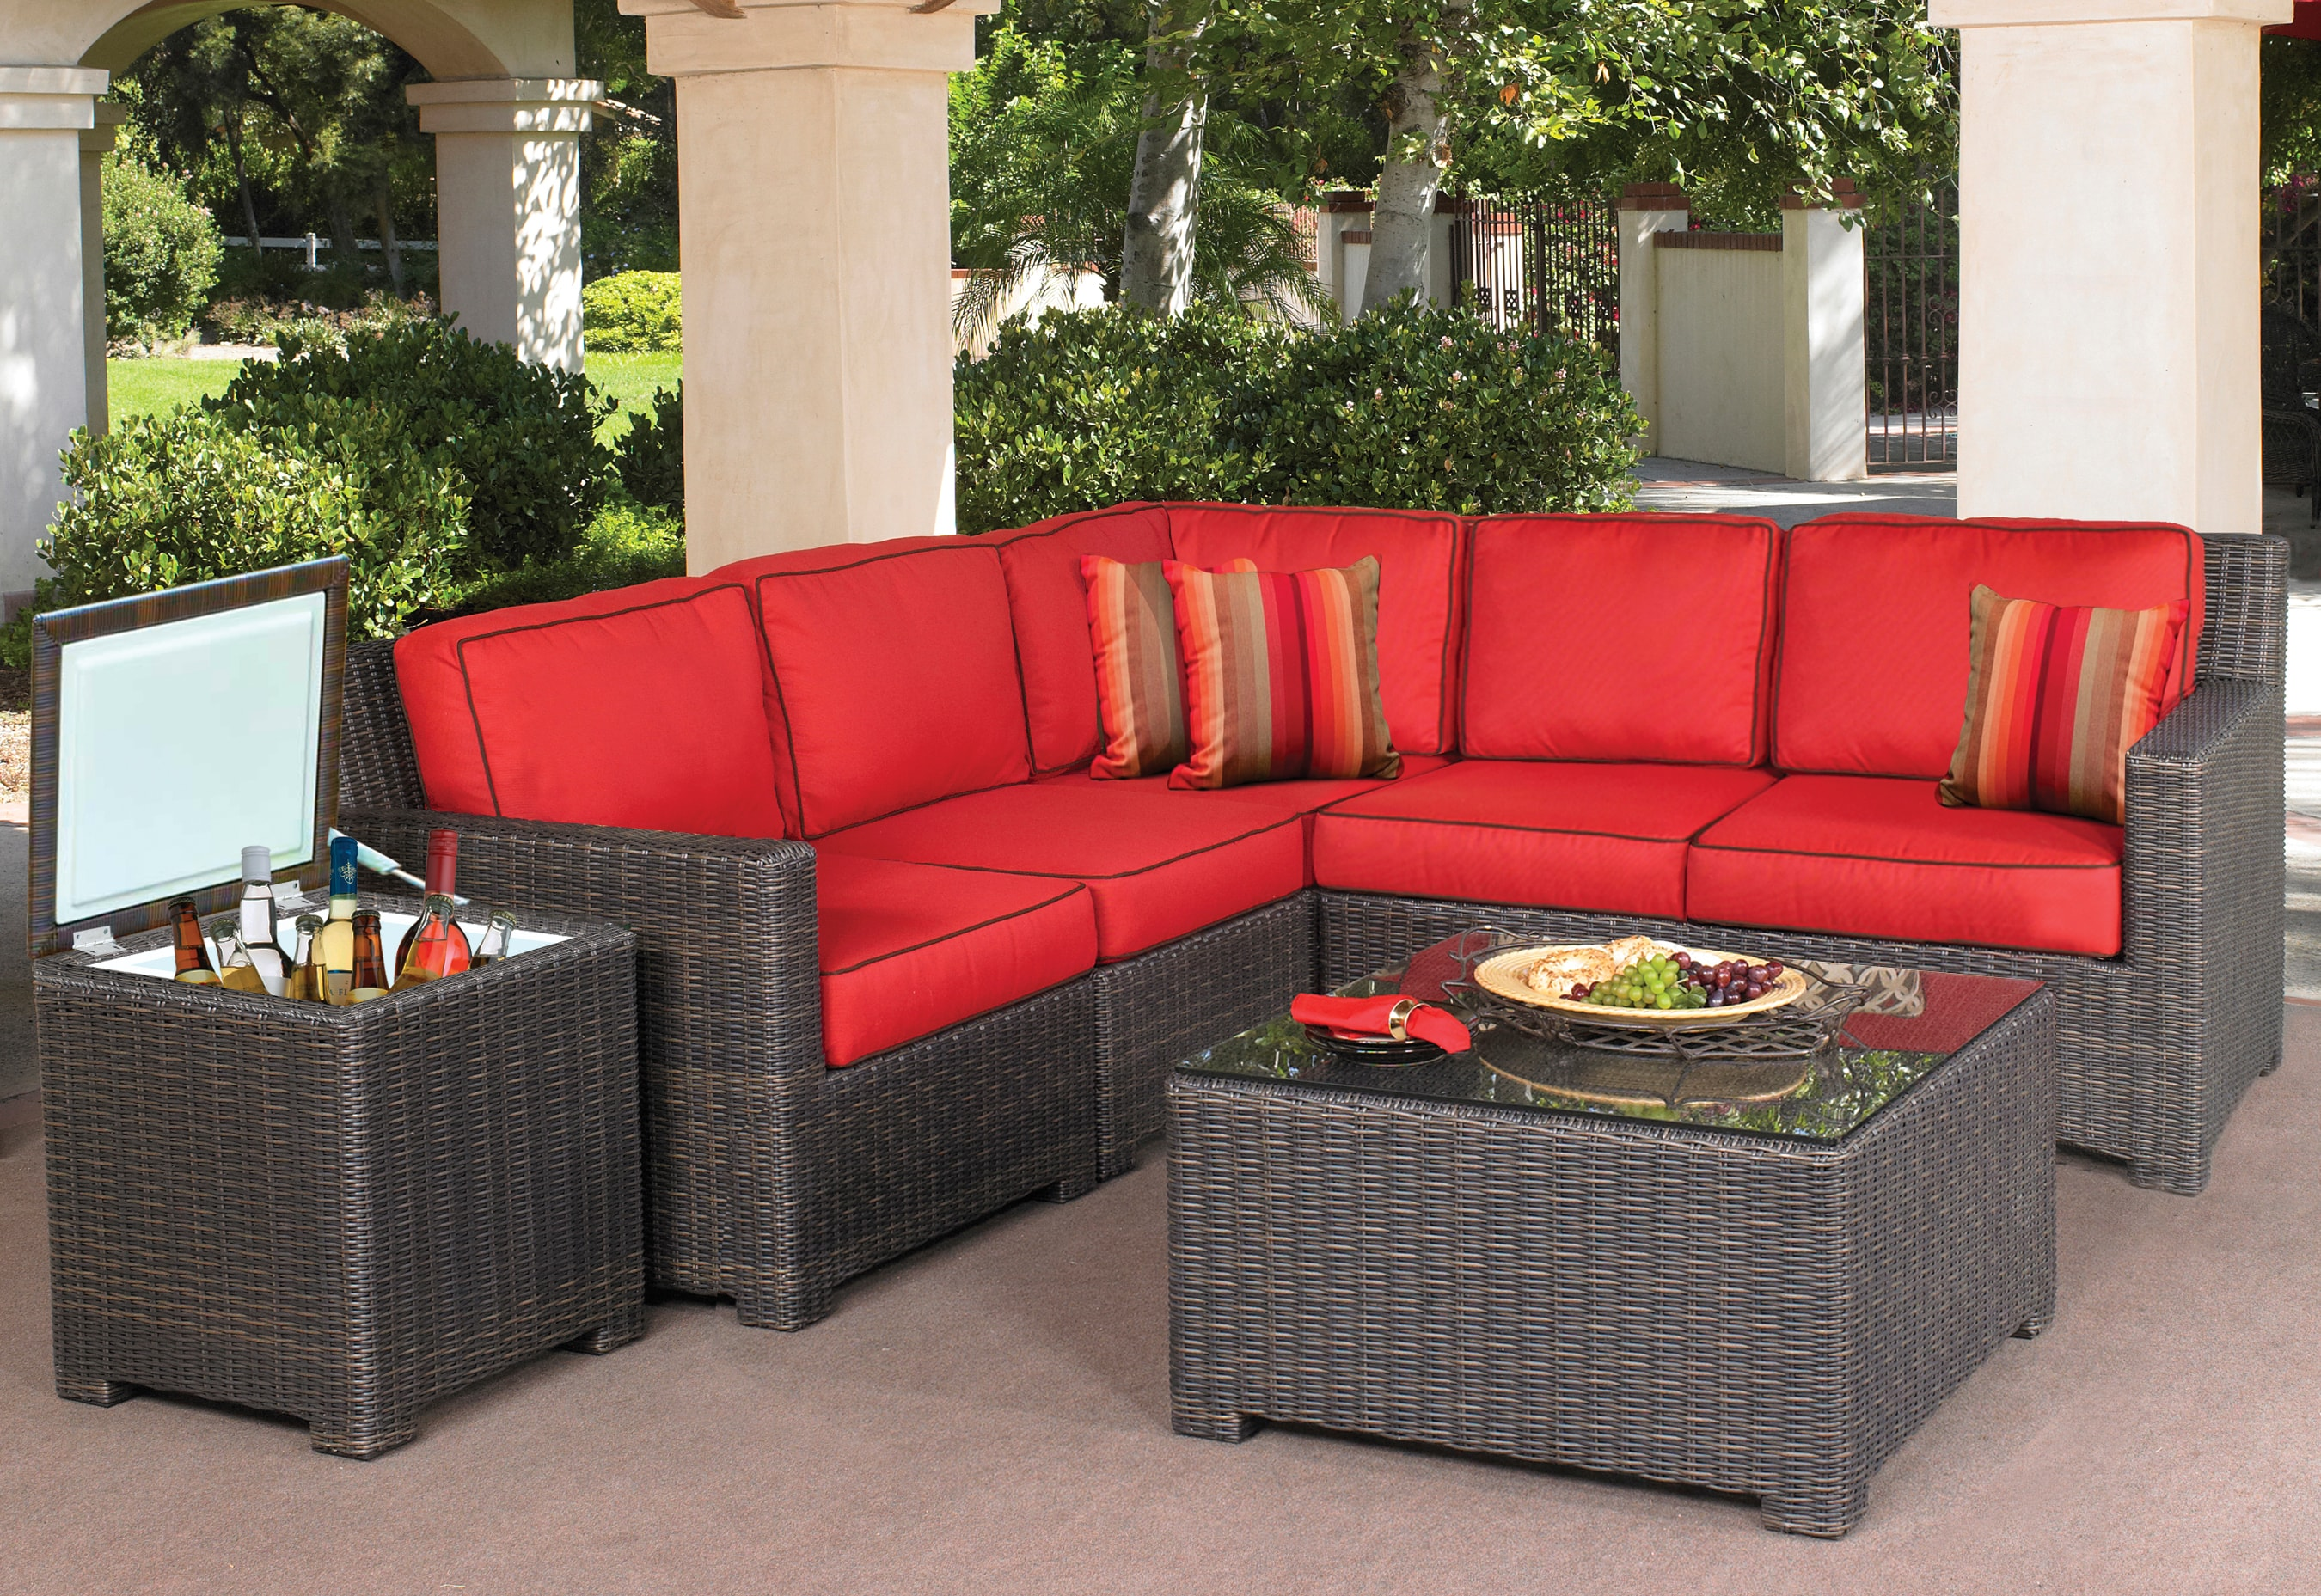 The Northport Red Collection